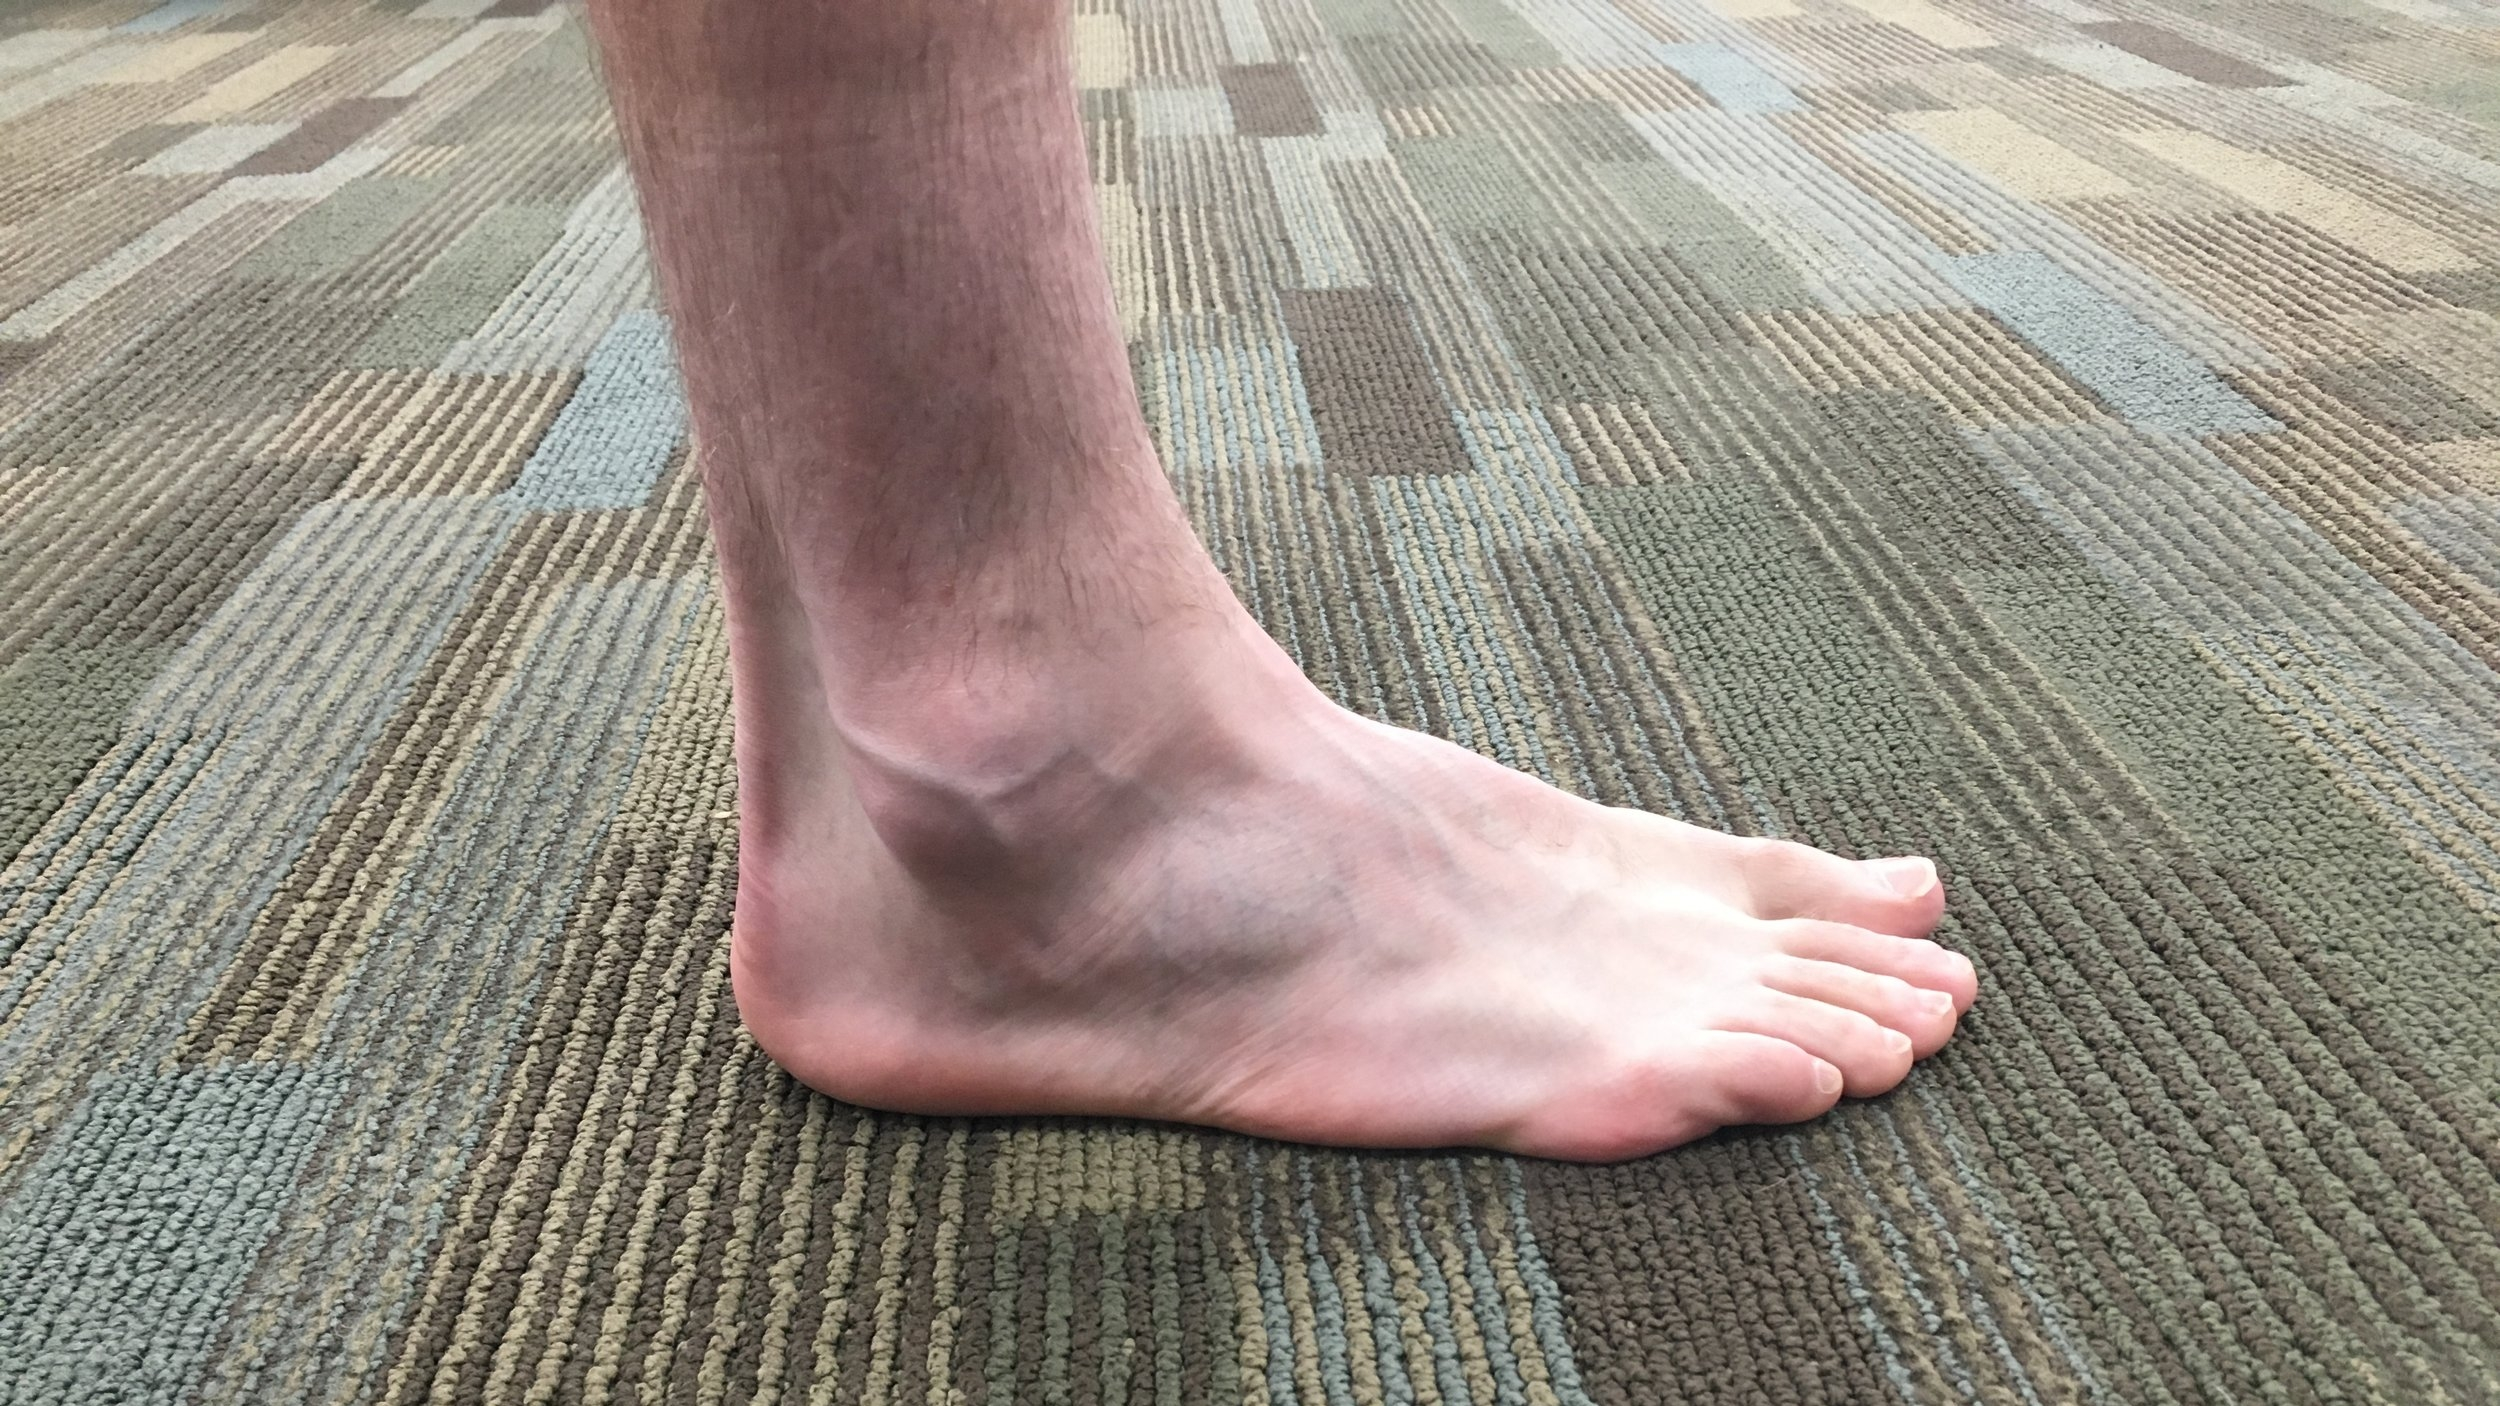 My standard foot and ankle modeling look, decent.